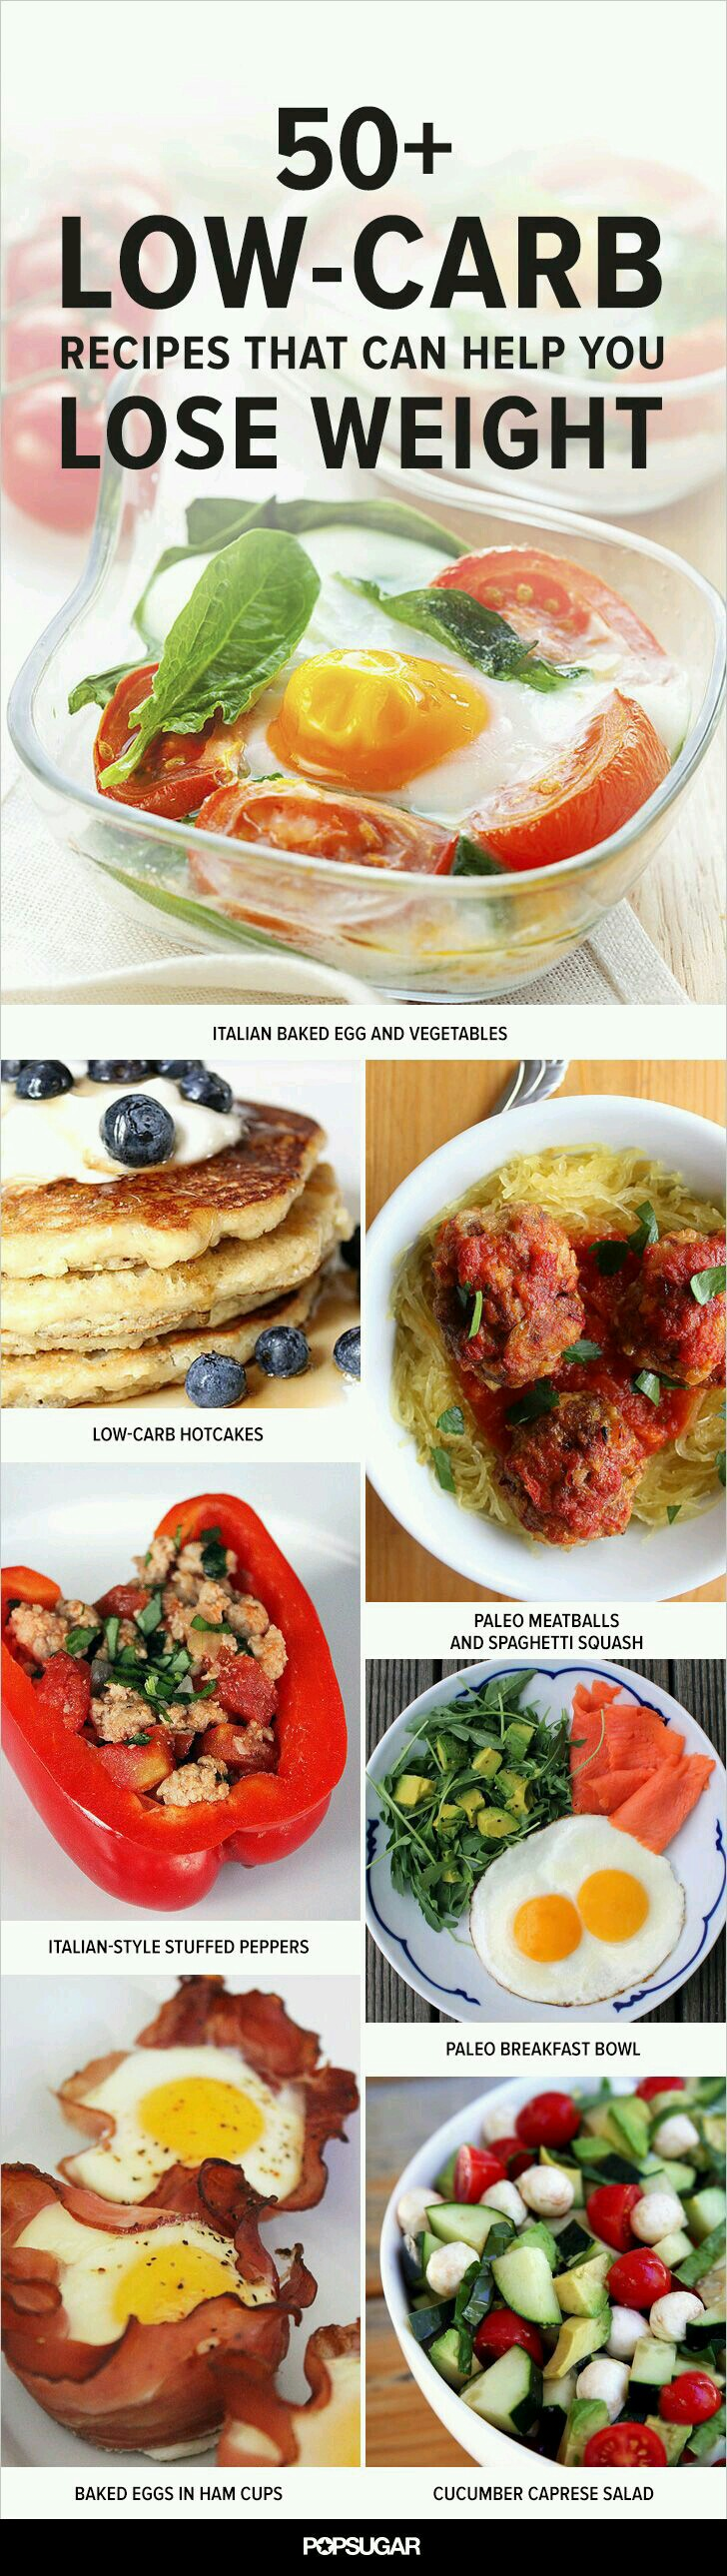 Pin by Brooke Blankenship on low carb | Healthy eating ...